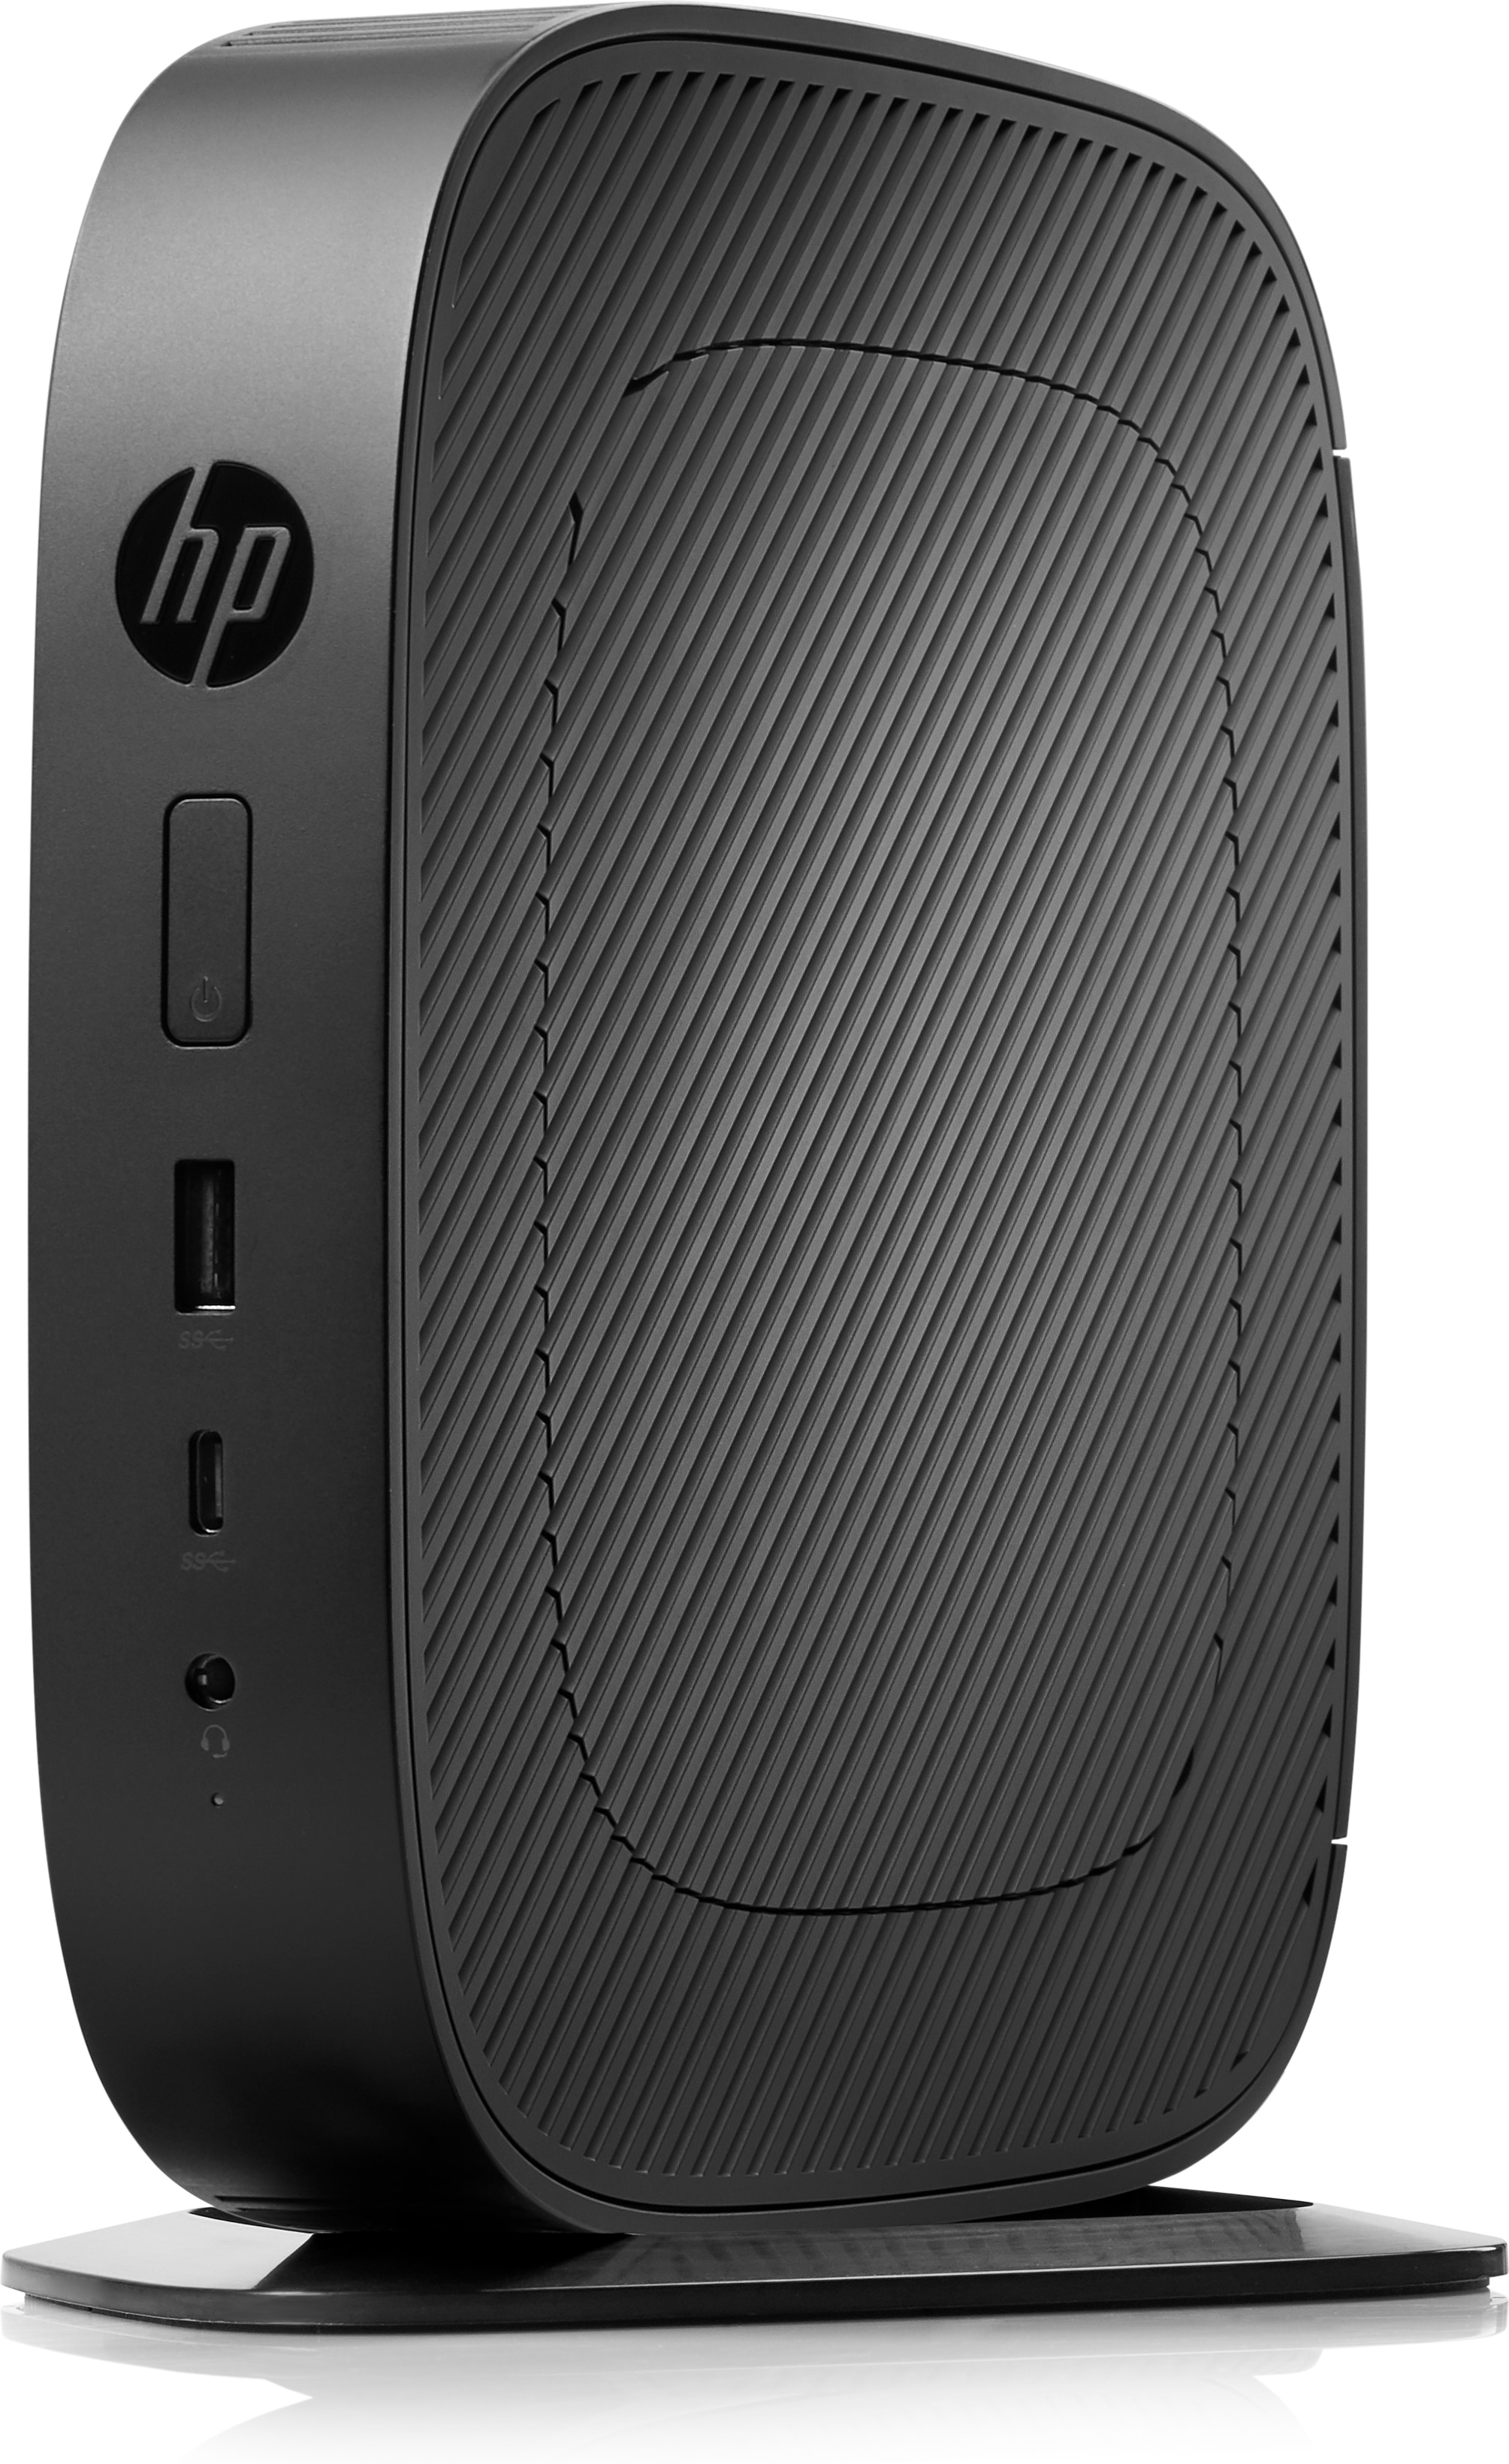 HP t530 Thin Client Tower 1 x GX-215JJ 1.5 GHz RAM 8 GB Flash 32 Radeon R2E GigE WLAN: Bluetooth 802.11ac Win 10 IOT Enterprise 64-Bit Monitor: keiner Tastatur: Deutsch